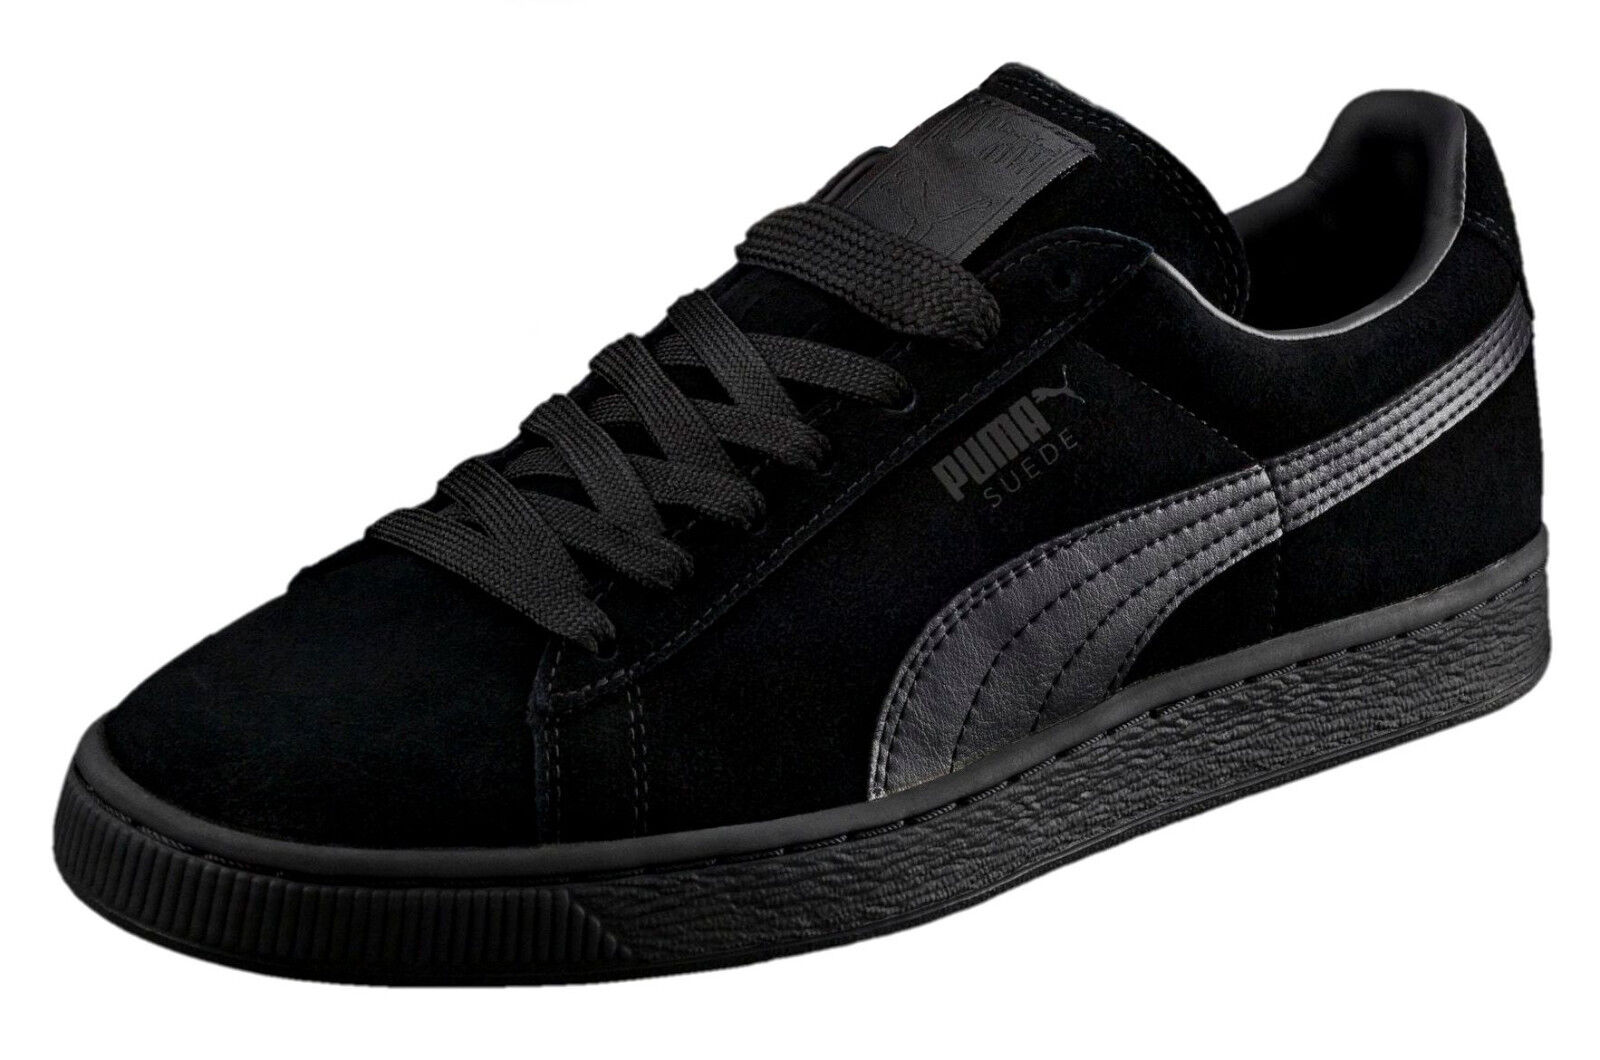 PUMA Suede Classic Leather Black Black Formstrip Mens Sneakers Tennis shoes